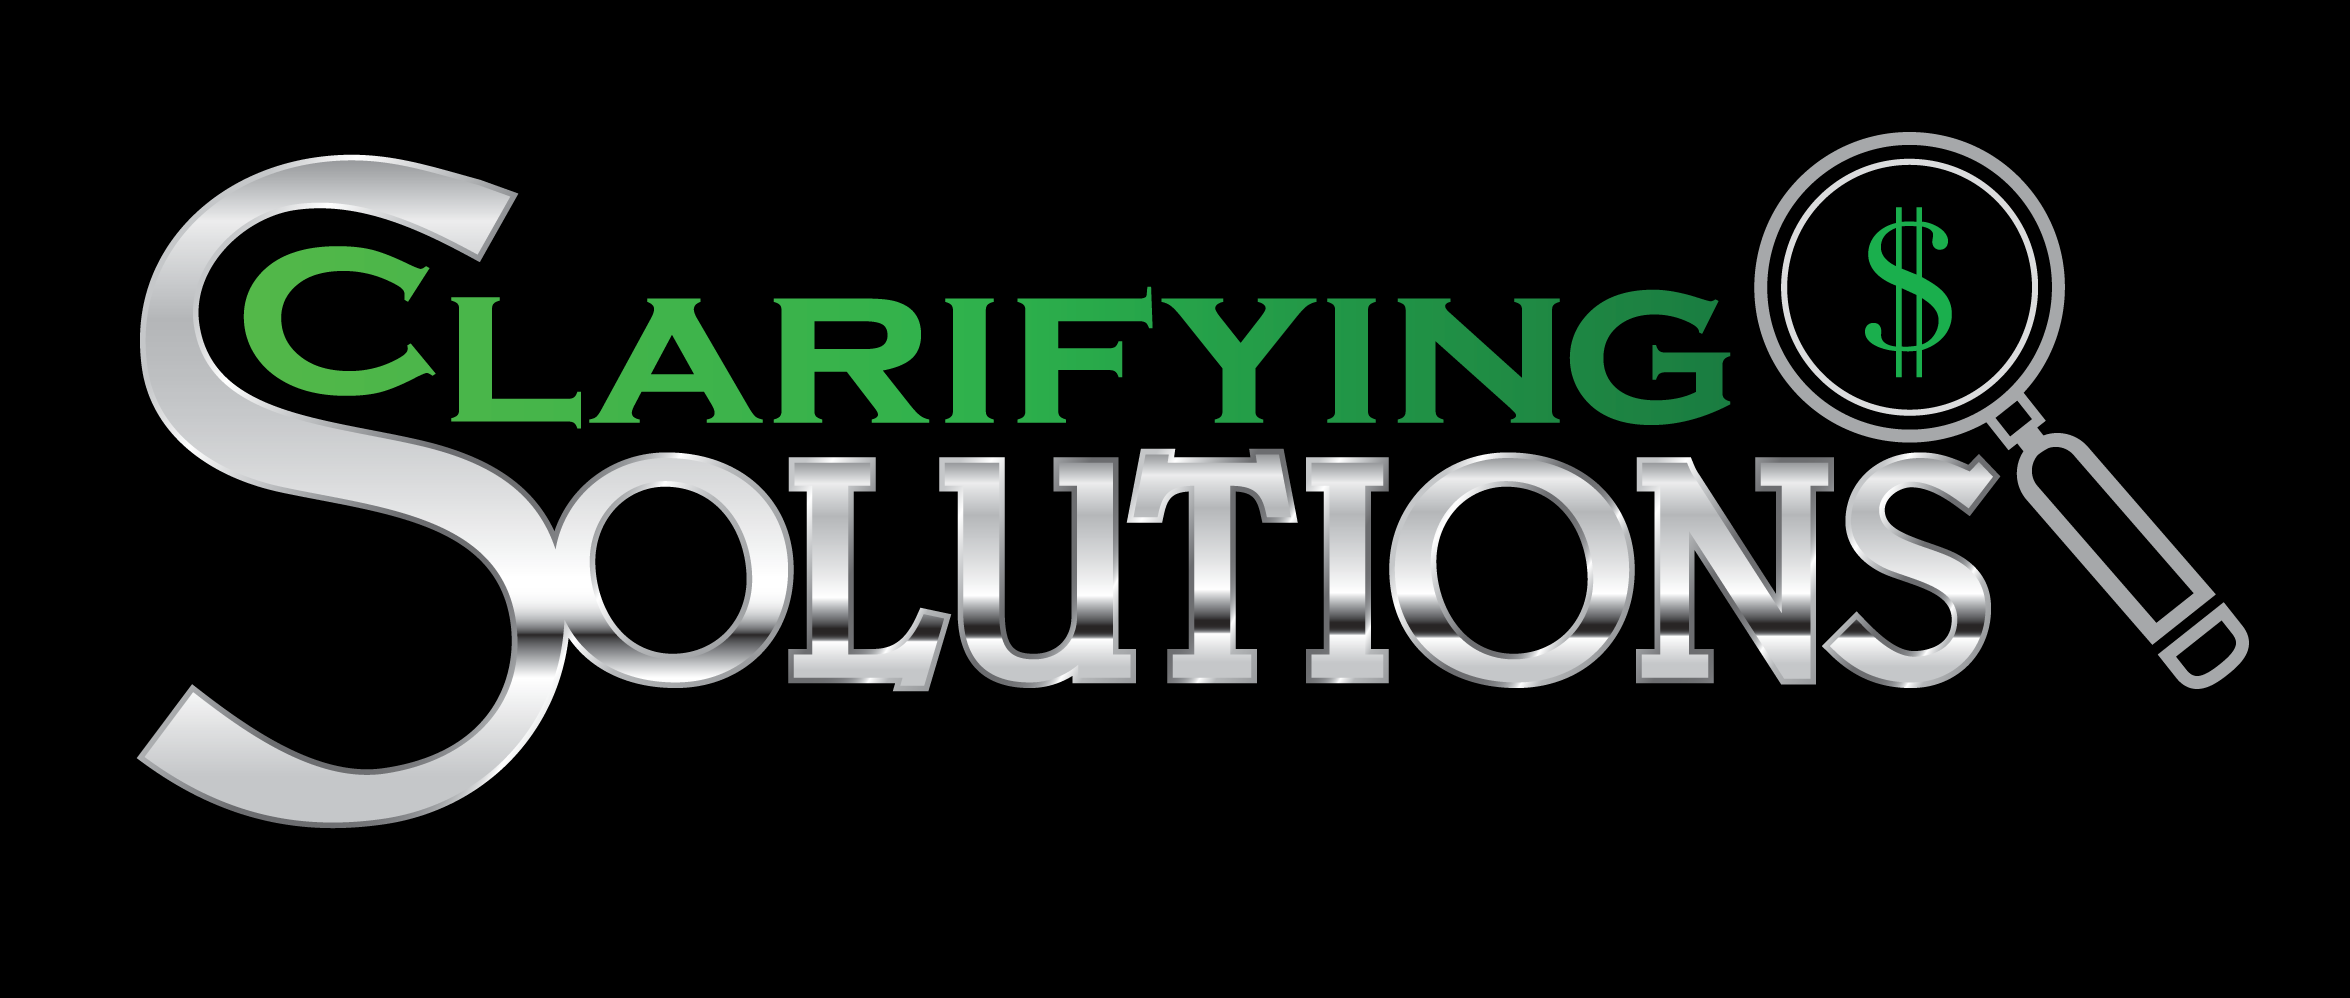 Clarifying Solutions